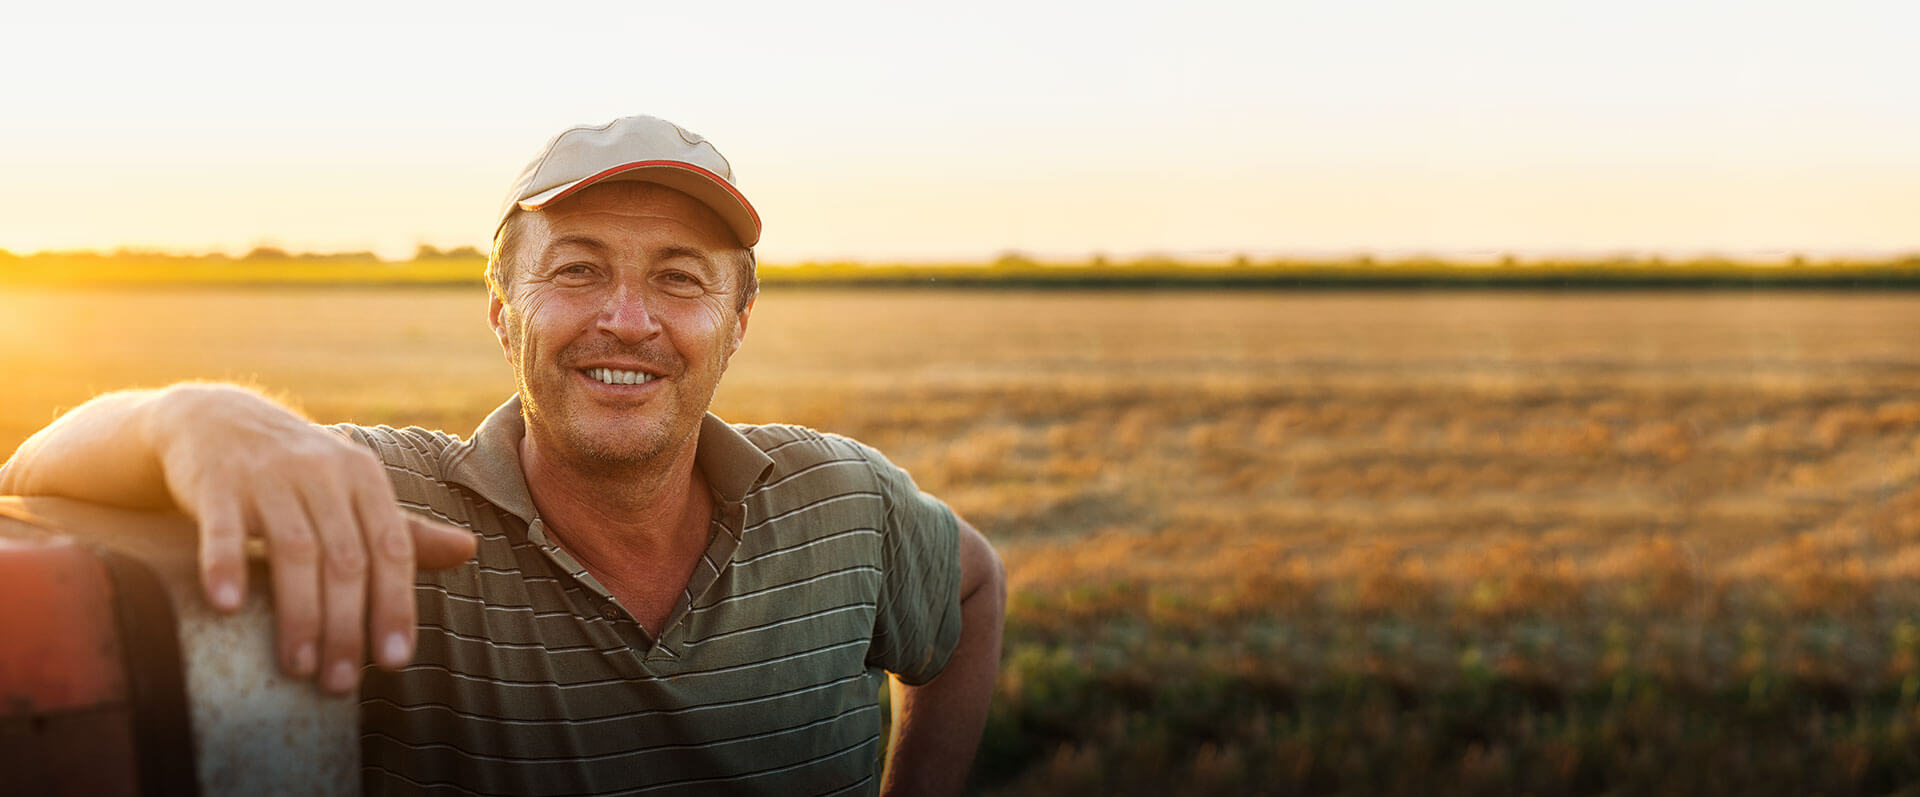 Image of Farmer Leaning on a truck in a field at sunset